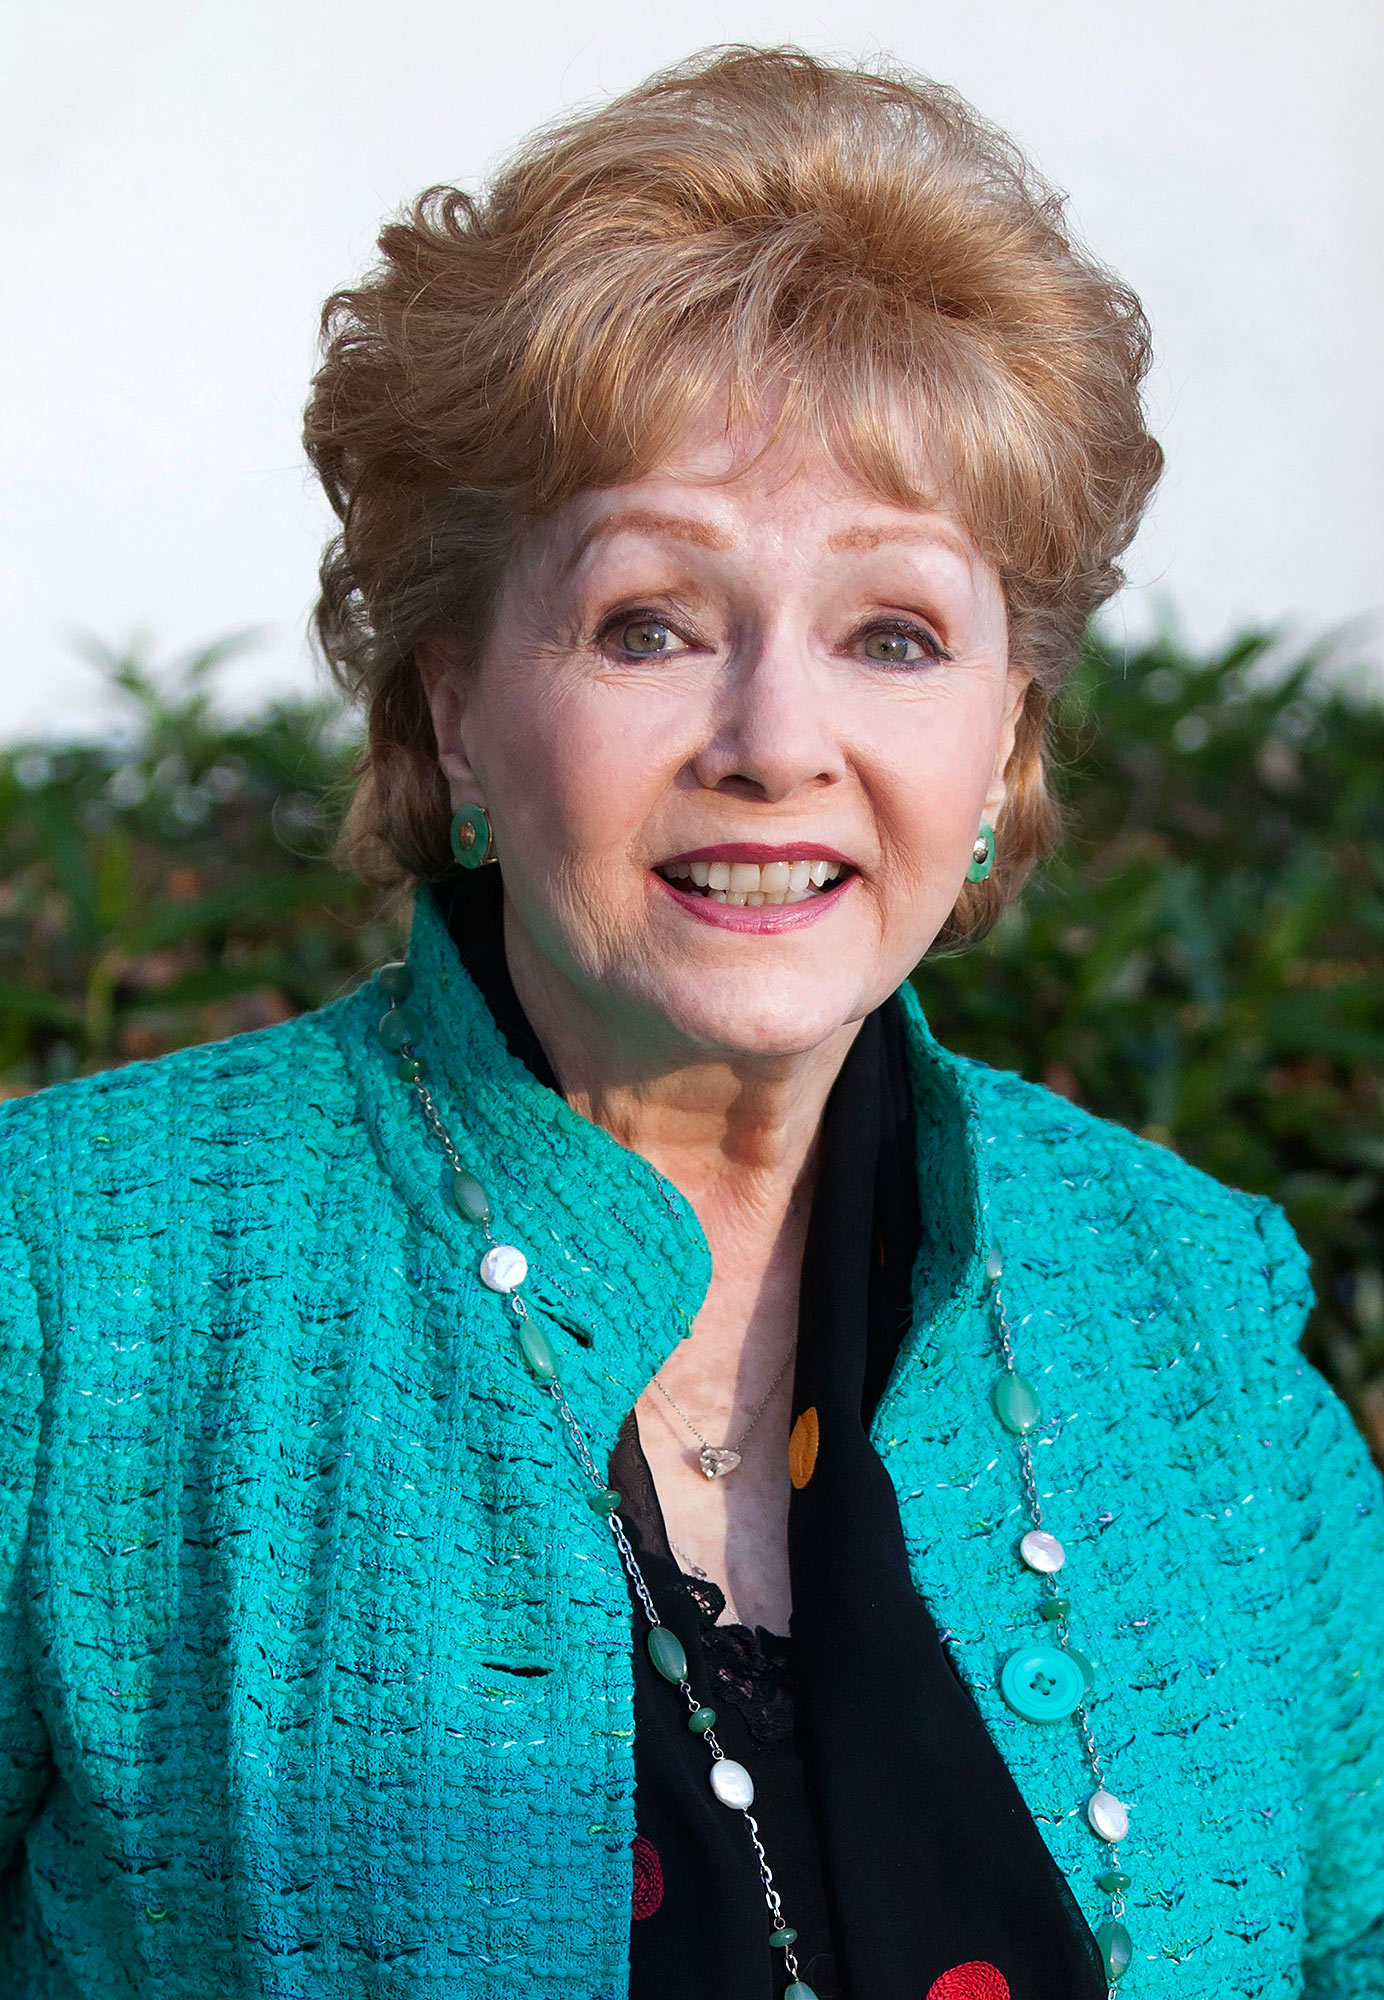 "FILE - DECMEBER 28: According to reports December 28, 2016 Debbie Reynolds was rushed to a Los Angeles area hospital with a possible stroke. Reynolds is the mother of Carrie Fisher who died December 27 after suffering a heart attack days earlier. WEST HOLLYWOOD, CA - SEPTEMBER 29: Debbie Reynolds arrives for the signing of her book, ""Unsinkable,"" on September 29, 2013 in West Hollywood, California. (Photo by Gabriel Olsen/FilmMagic)"